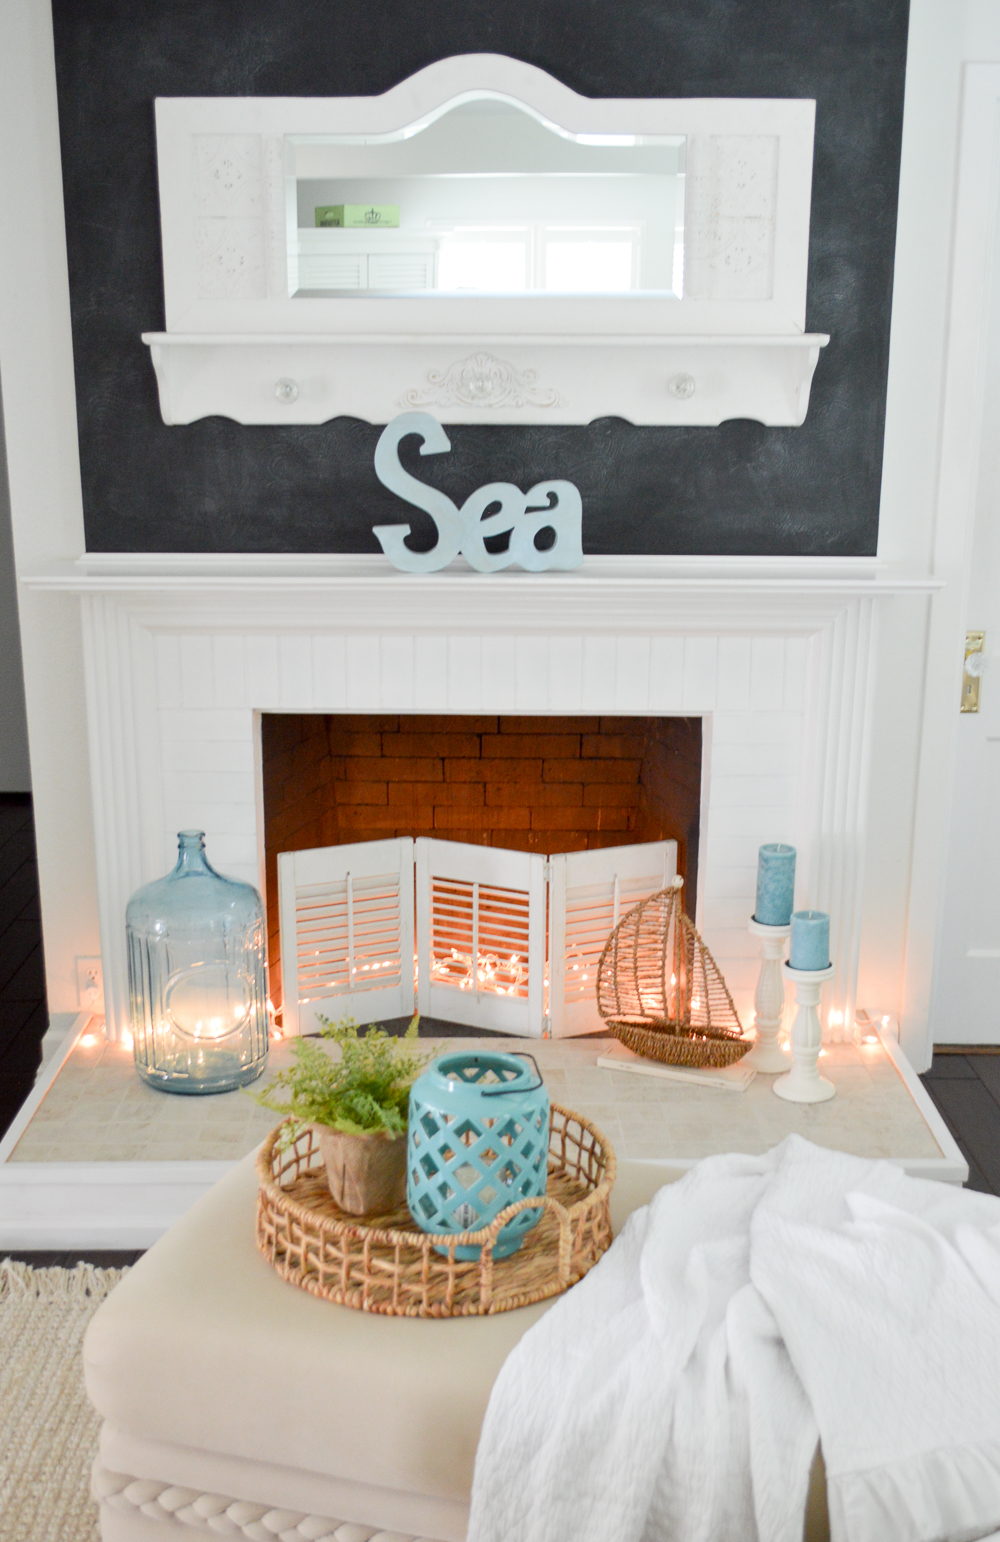 I'm bringing aqua back to my cottage home, for an airy coastal feel. Aqua Blue Cottage Home Decorating Ideas at Fox Hollow Cottage blog - www.foxhollowcottage.com